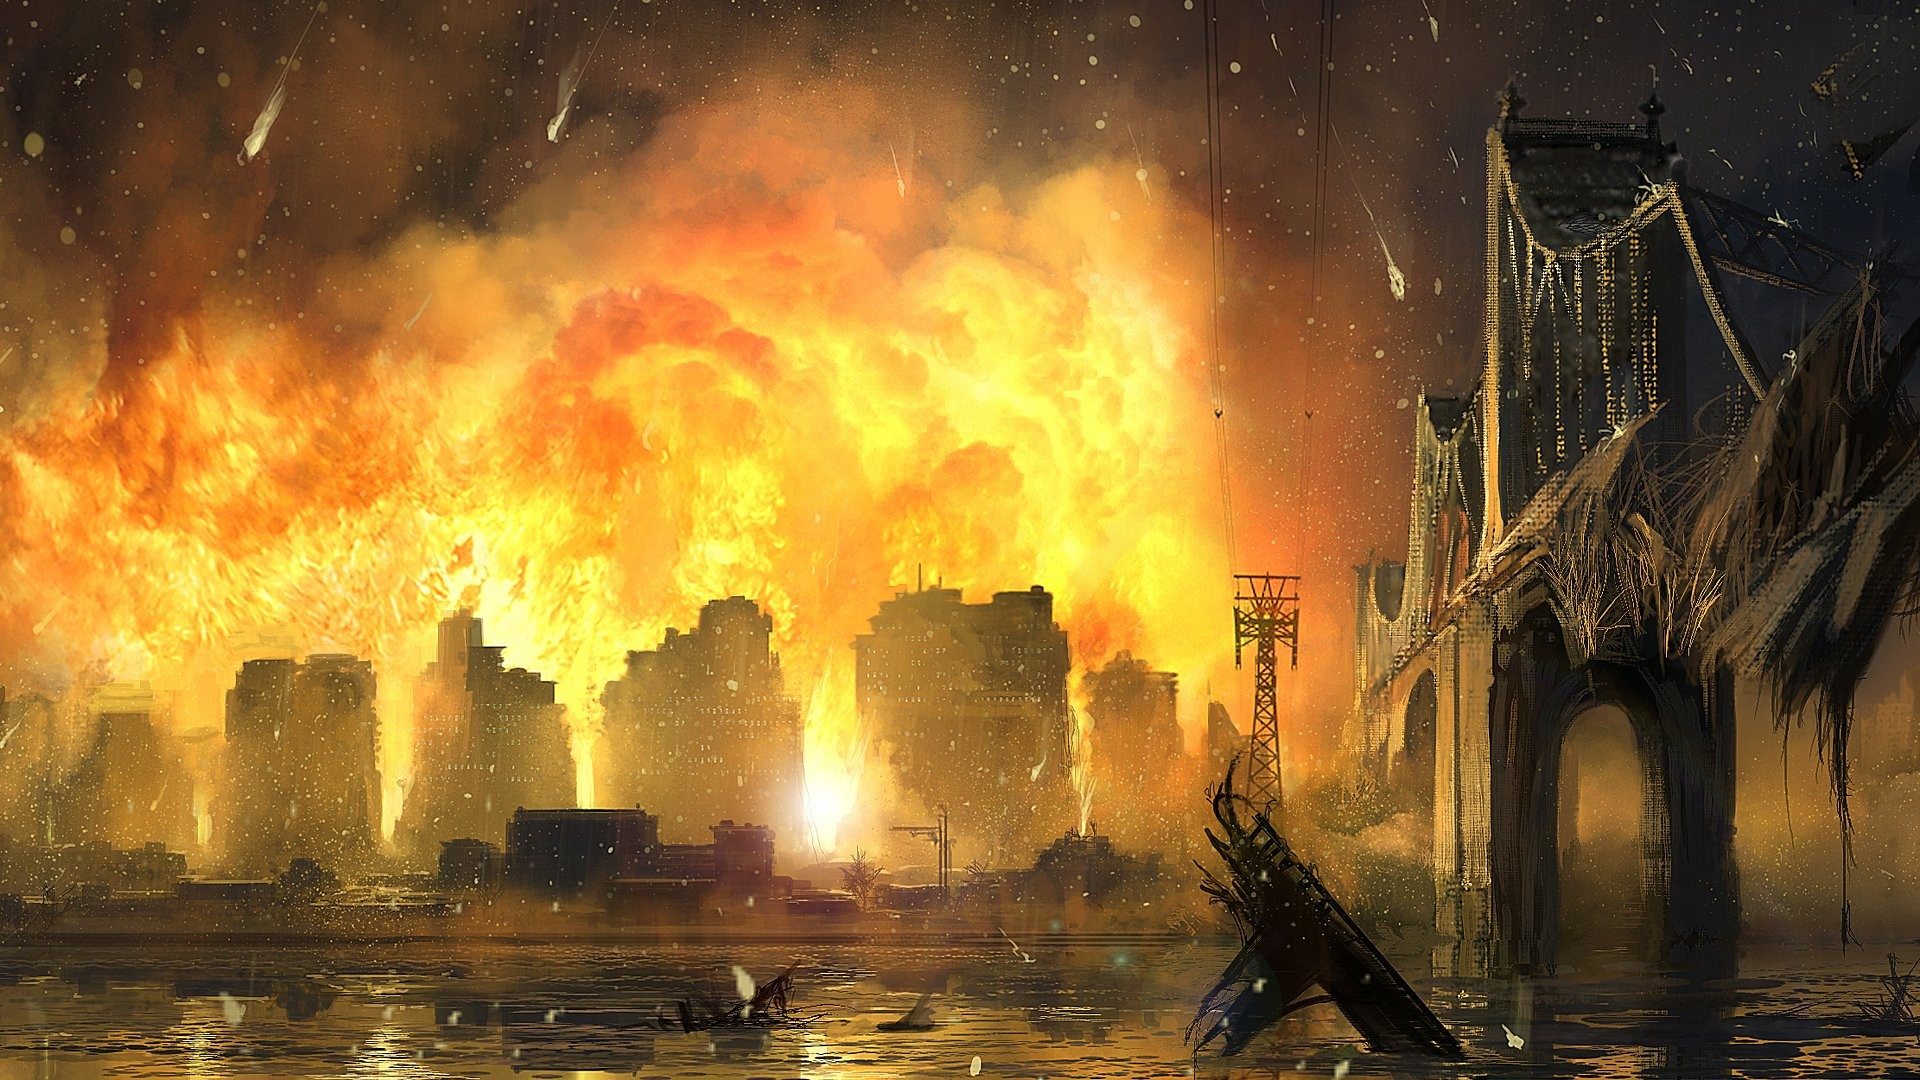 Art wallpaper with a fiery apocalypse somewhere in America